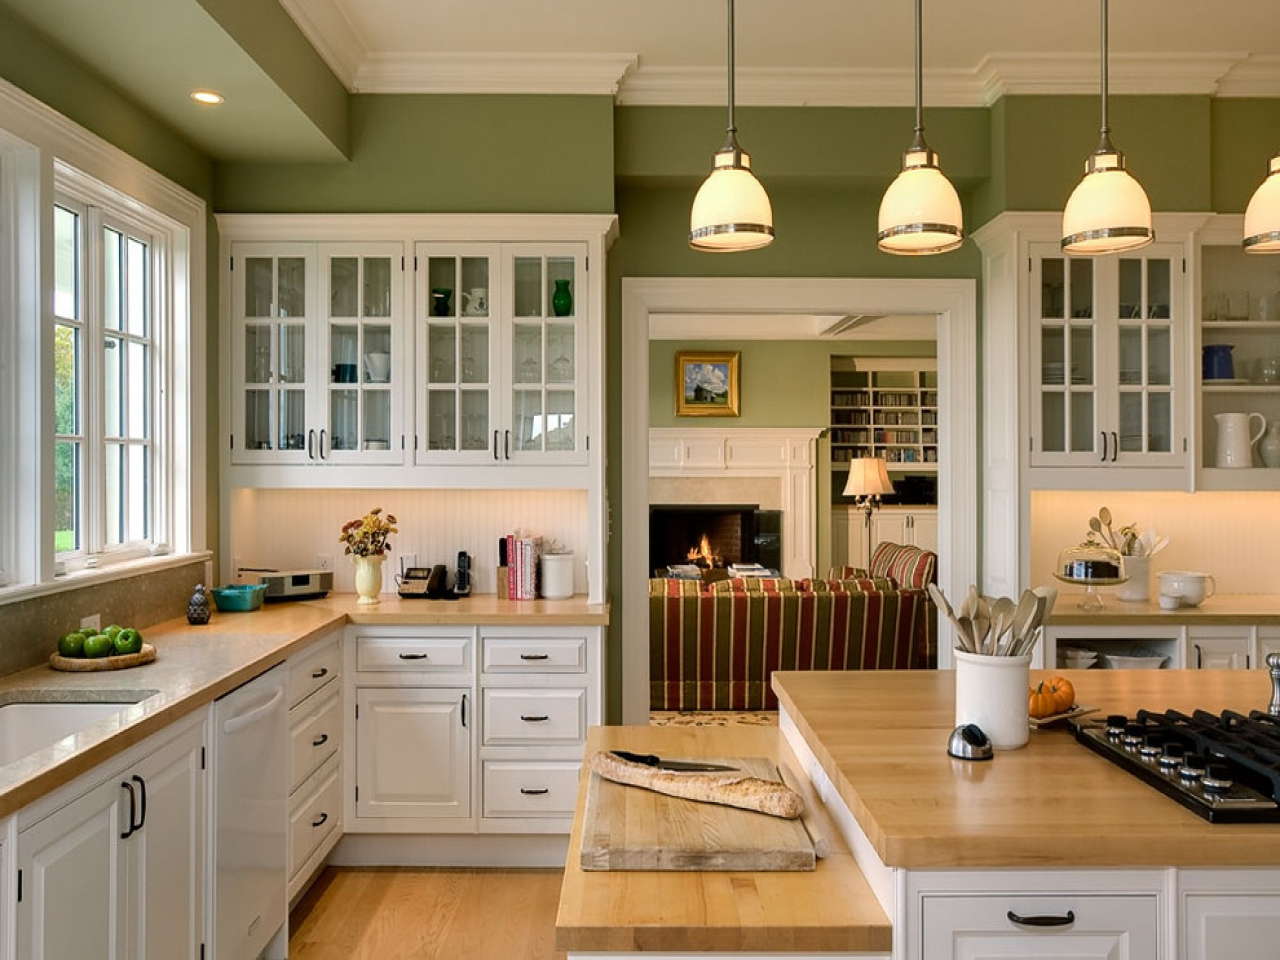 Country Style Kitchen Designs kitchen design images - kitchen in country style with wooden